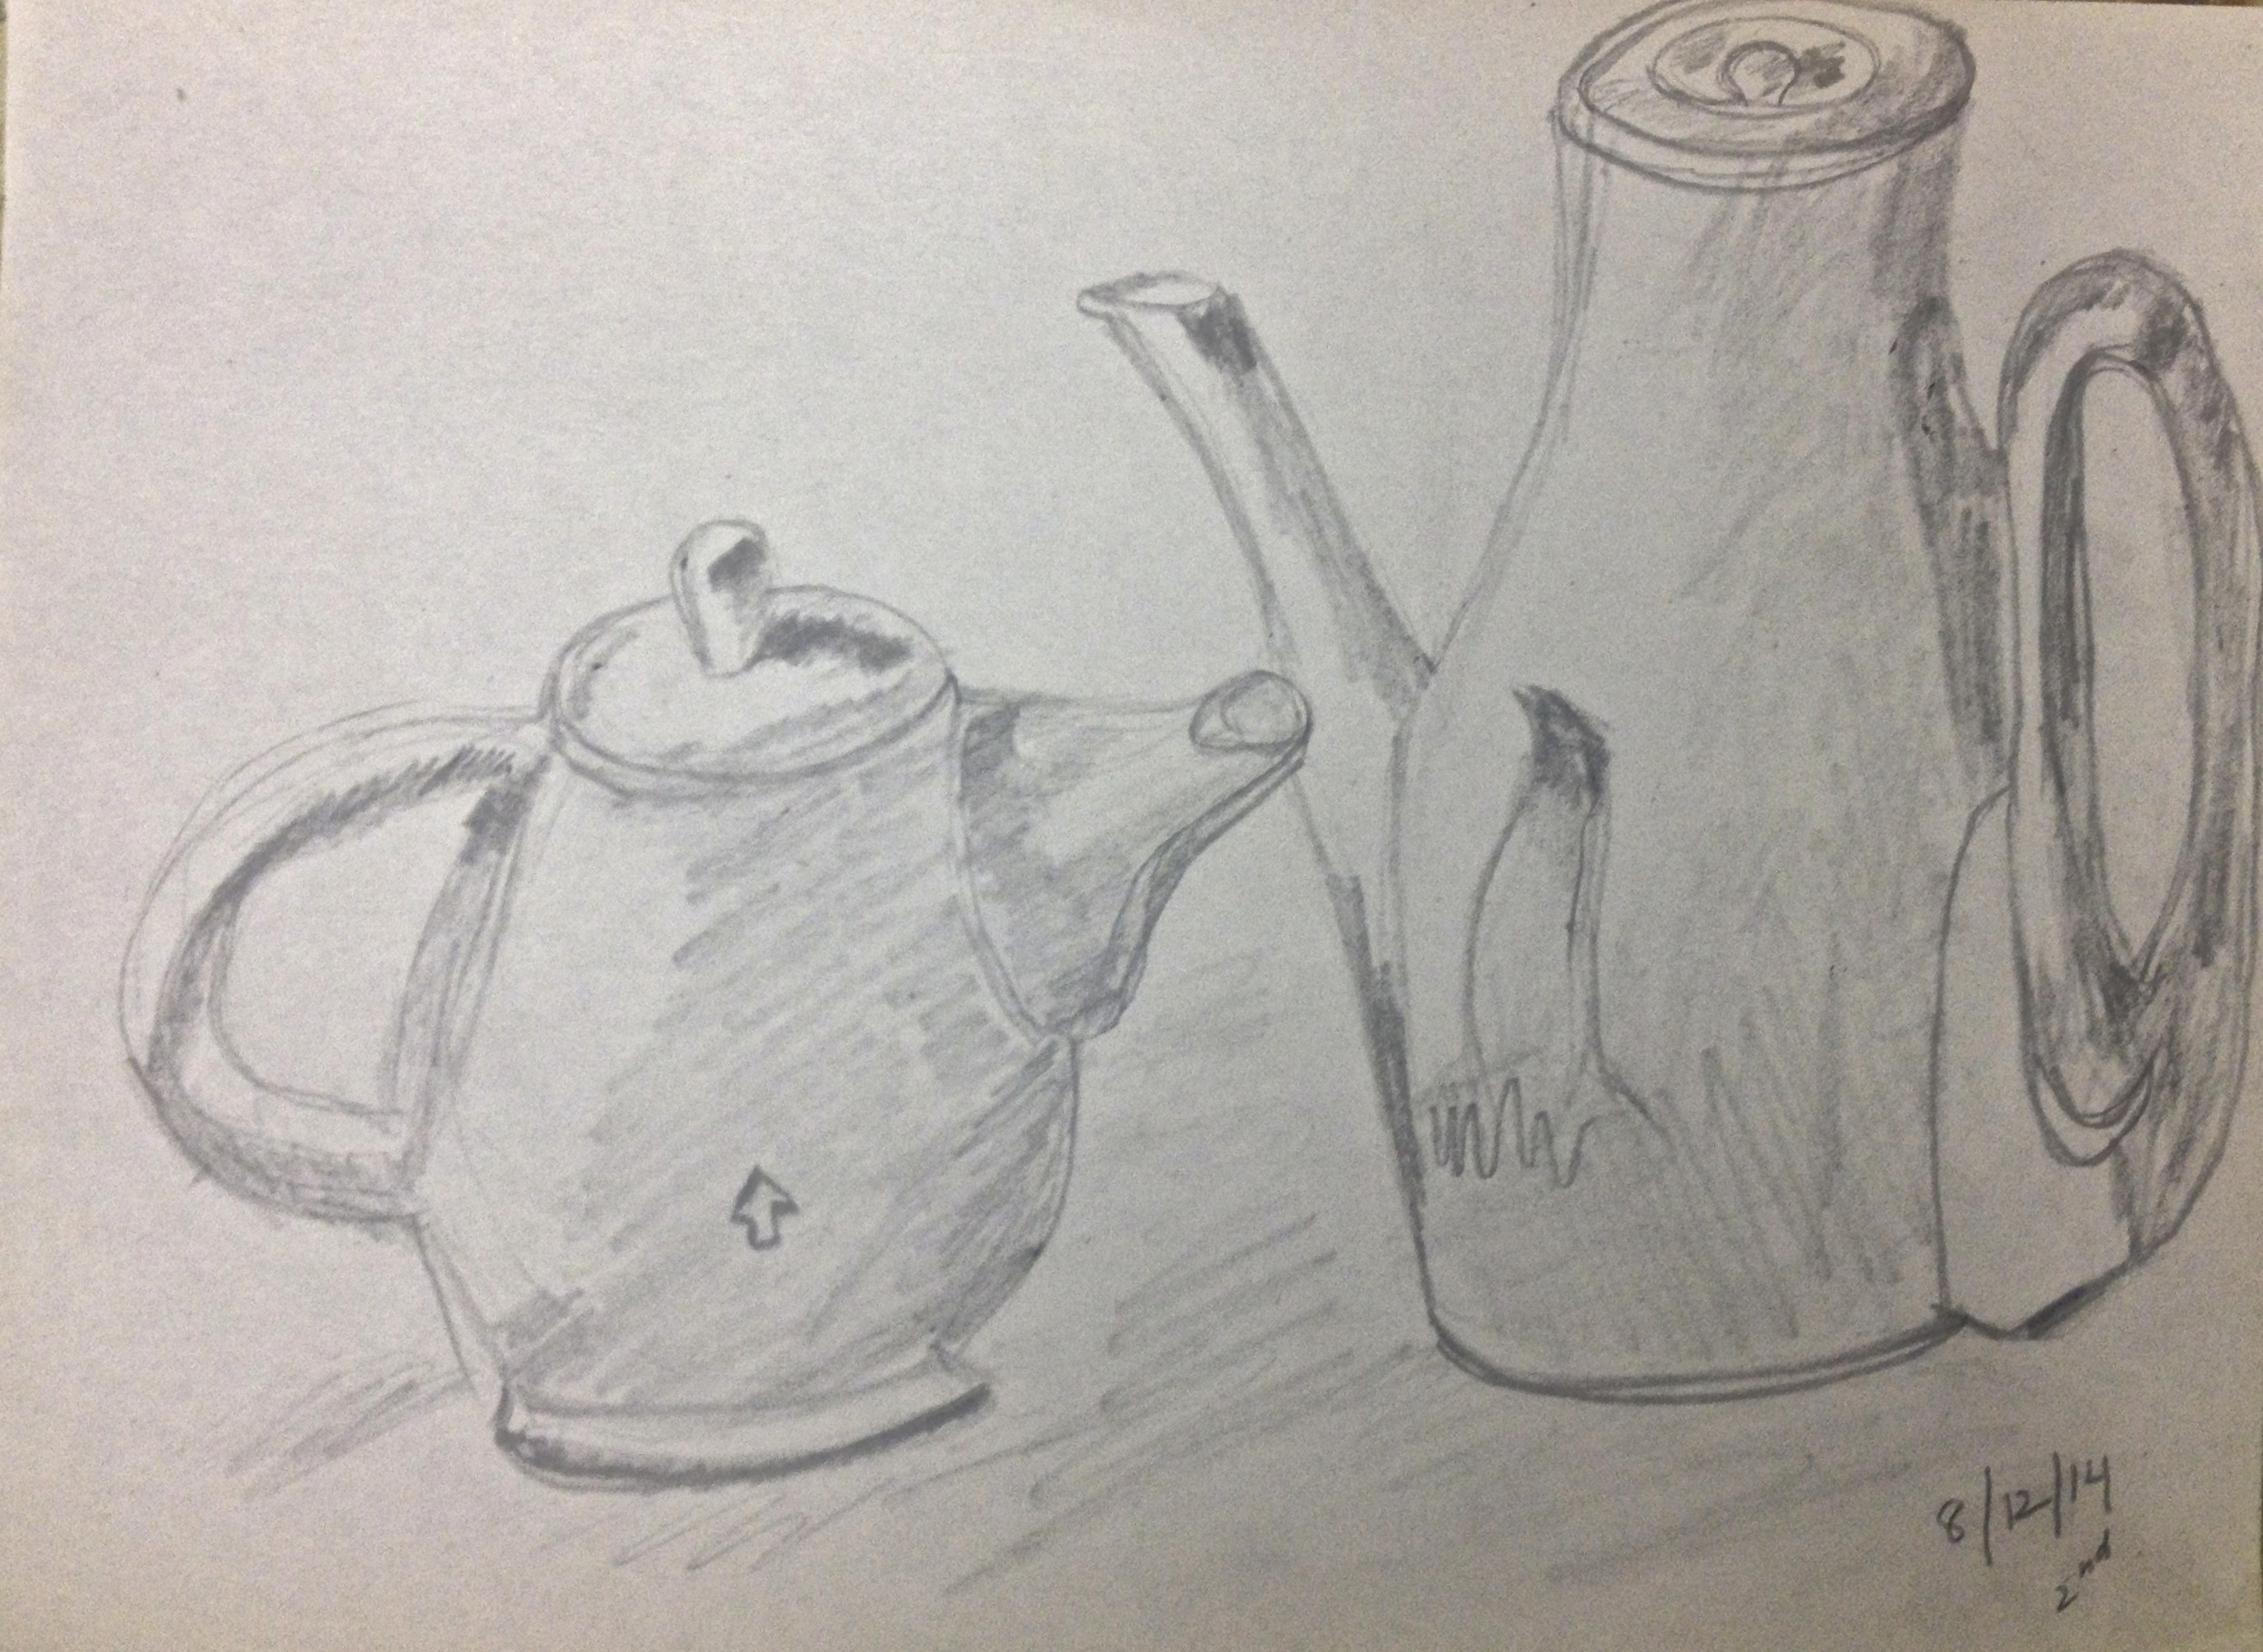 AFTER. Same student at the end of one of Dori's drawing classes. She caught on quick!